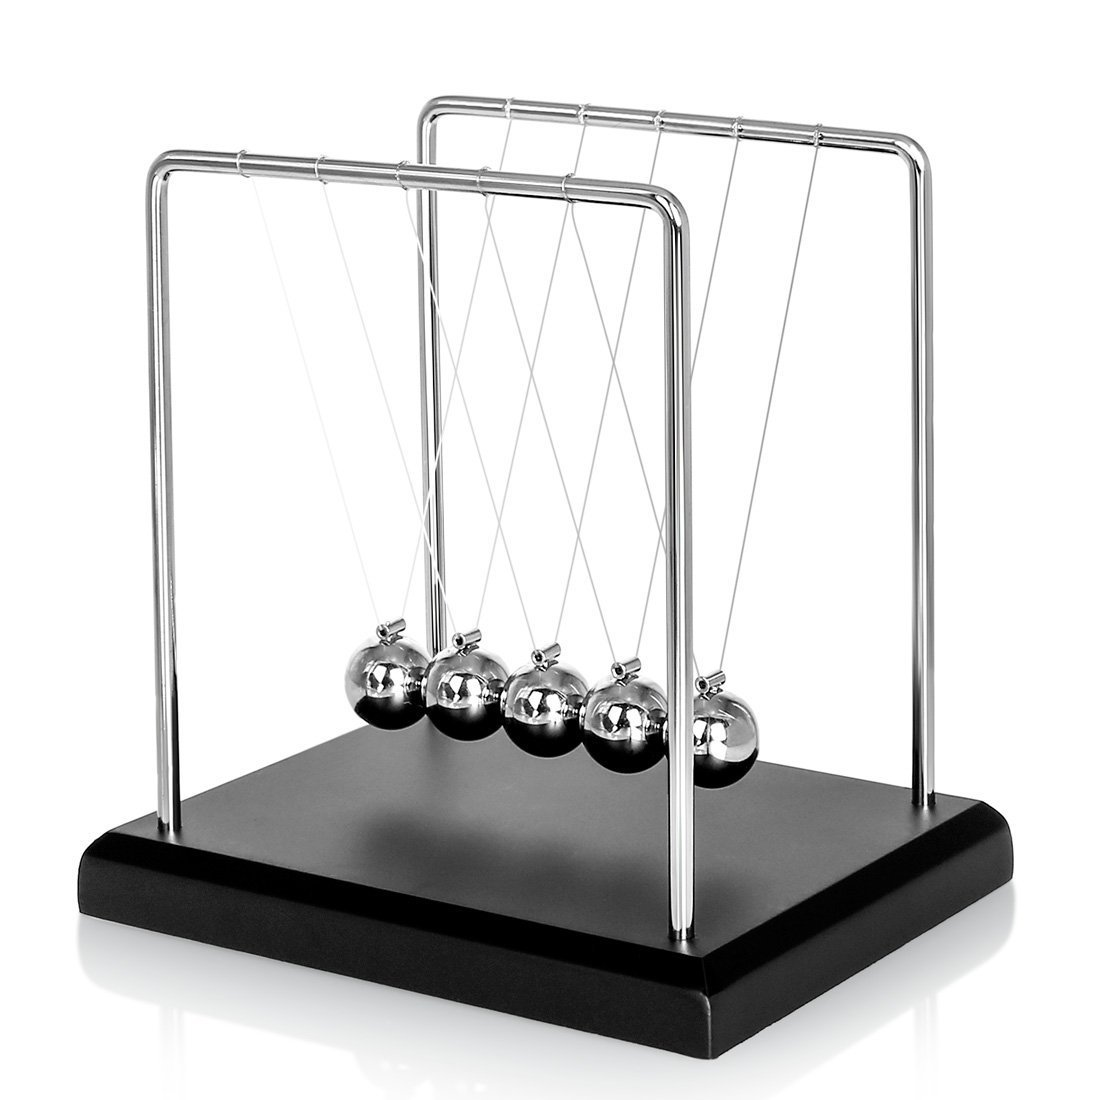 Newton's Cradle, Zinnor Newton's Cradle Balance Balls with Metal Balance Ball and Black Wooden Base Cccompany Your Child's Grown-Up | Decoration for Living Room Drawing Room and Office Newton's Cradle